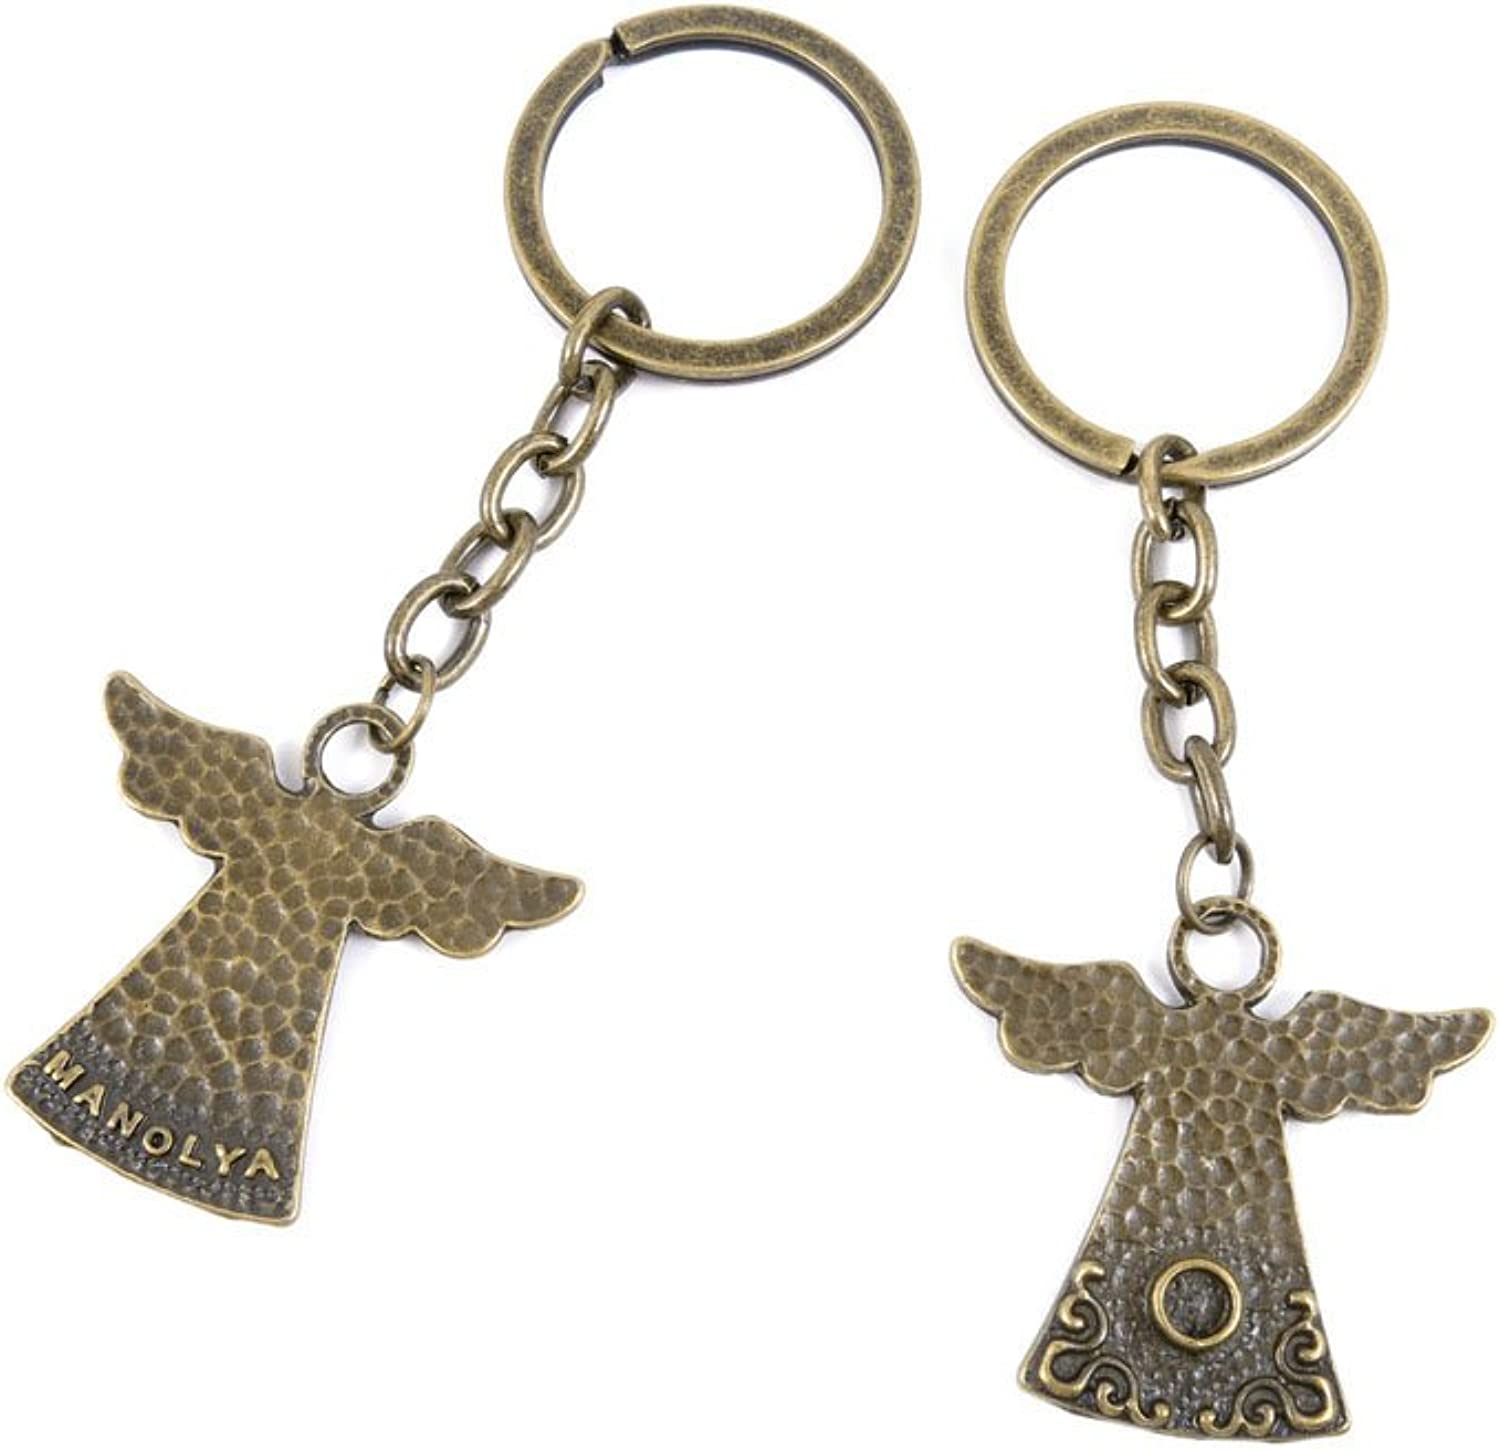 100 PCS Keyrings Keychains Key Ring Chains Tags Jewelry Findings Clasps Buckles Supplies N7ED6 Angel